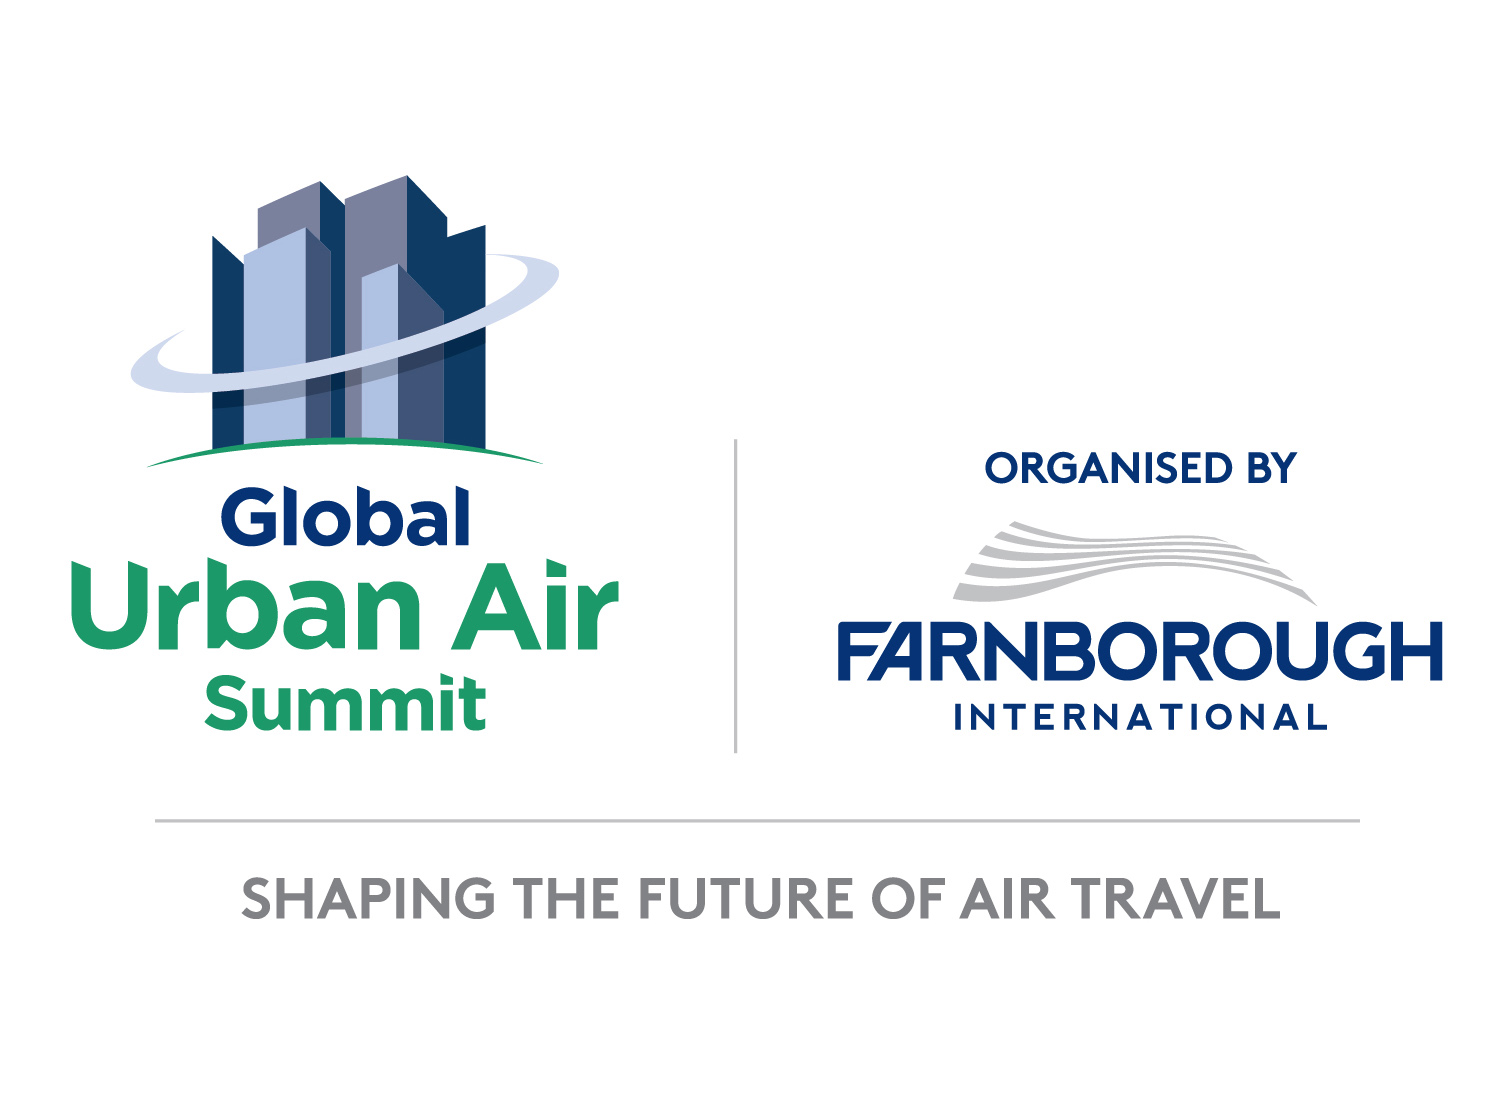 Global Urban Air Summit - 'Shaping the Future of Air Travel'